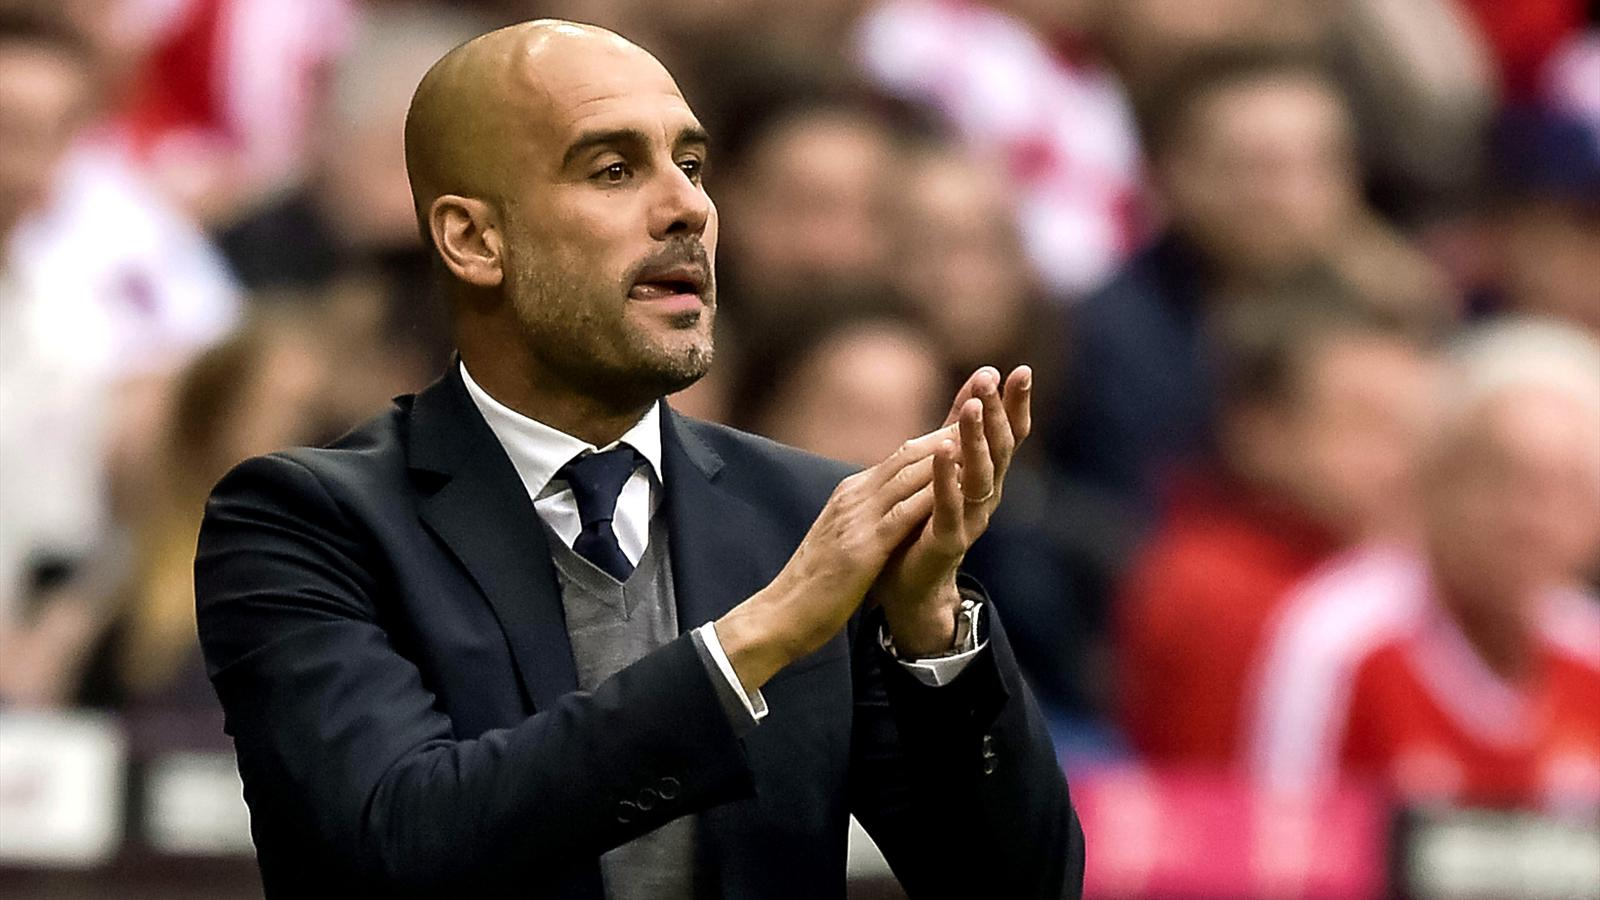 Pep Guardiola 'agrees to coach Manchester City this summer' - Premier League 2012-2013 - Football - Eurosport